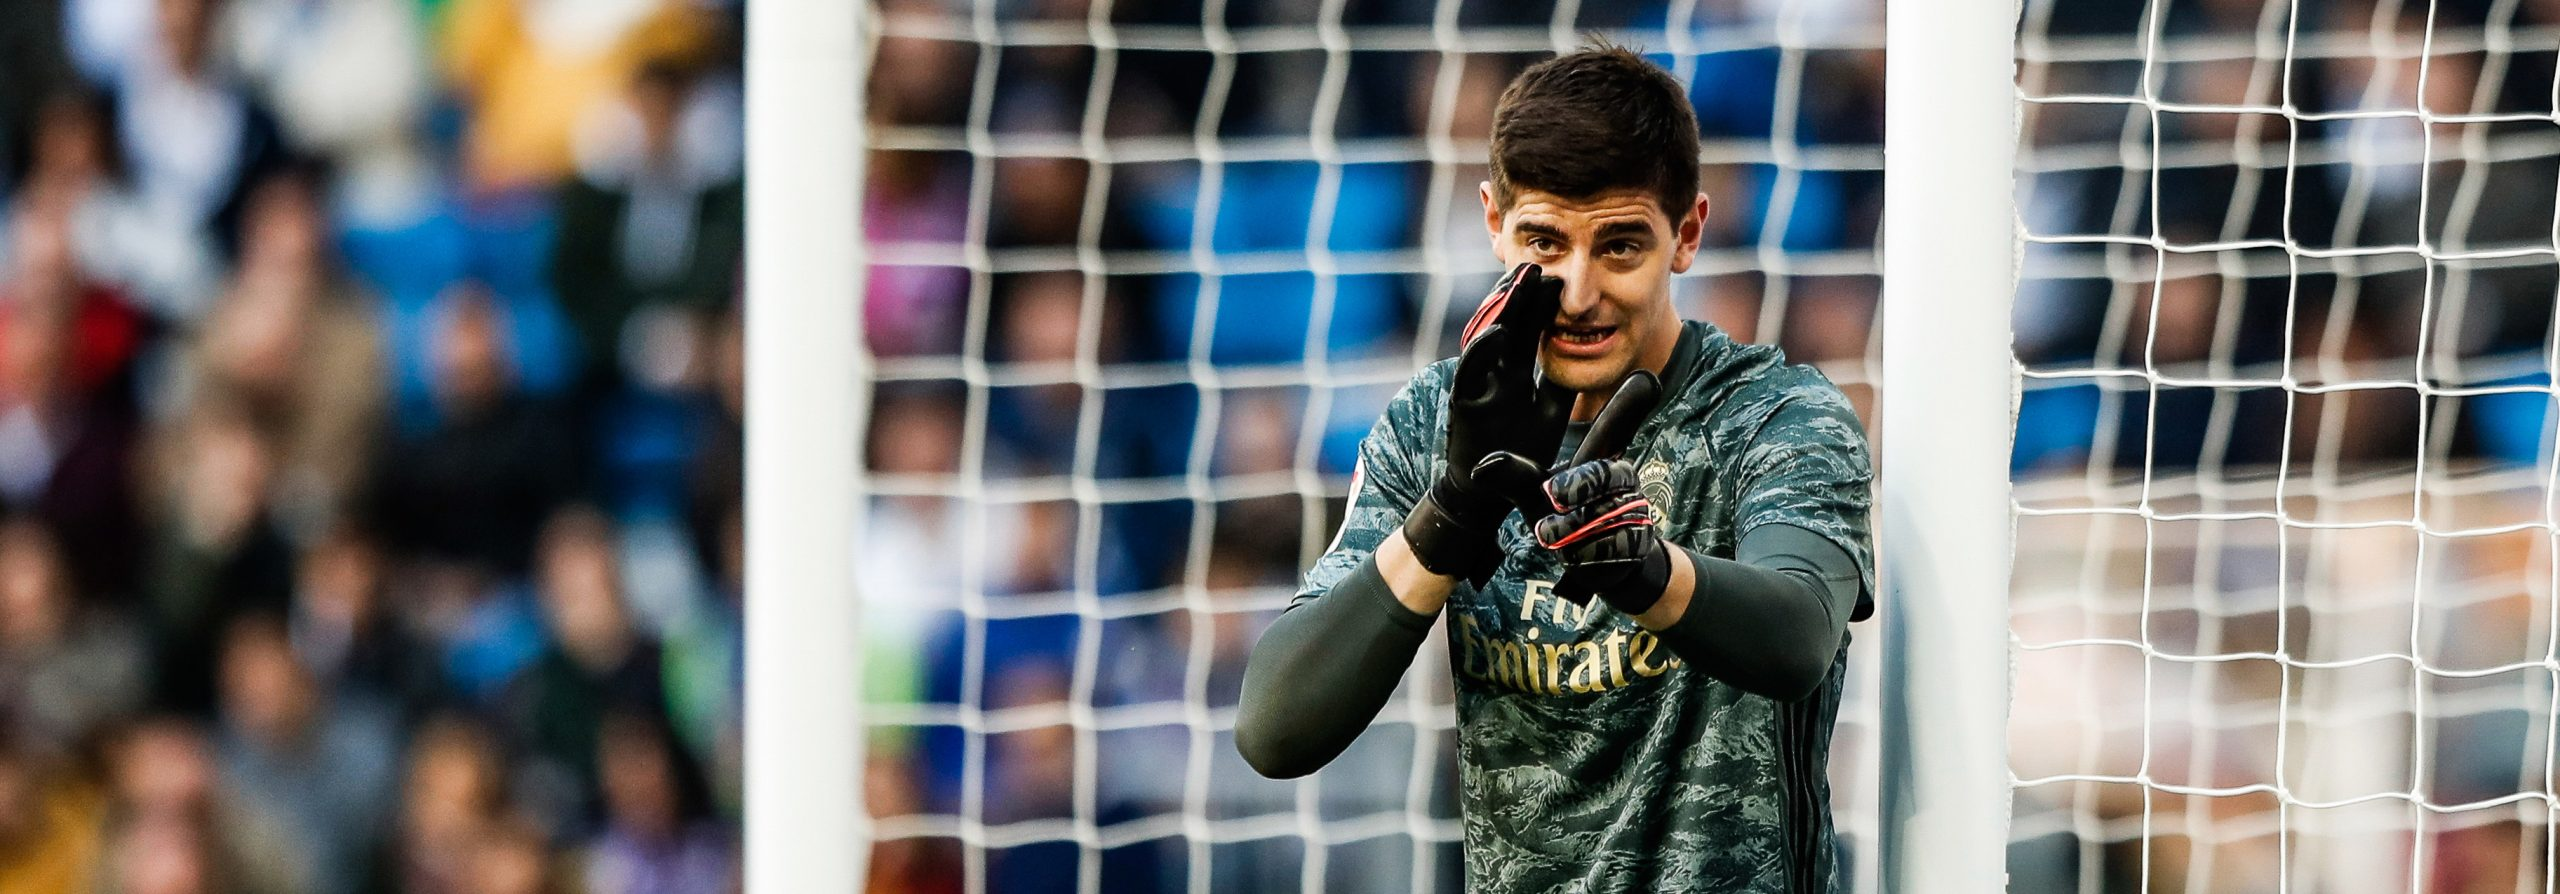 Real-Madrids-Thibaut-Courtois-setting-the-wall-in-a-La-Liga-game